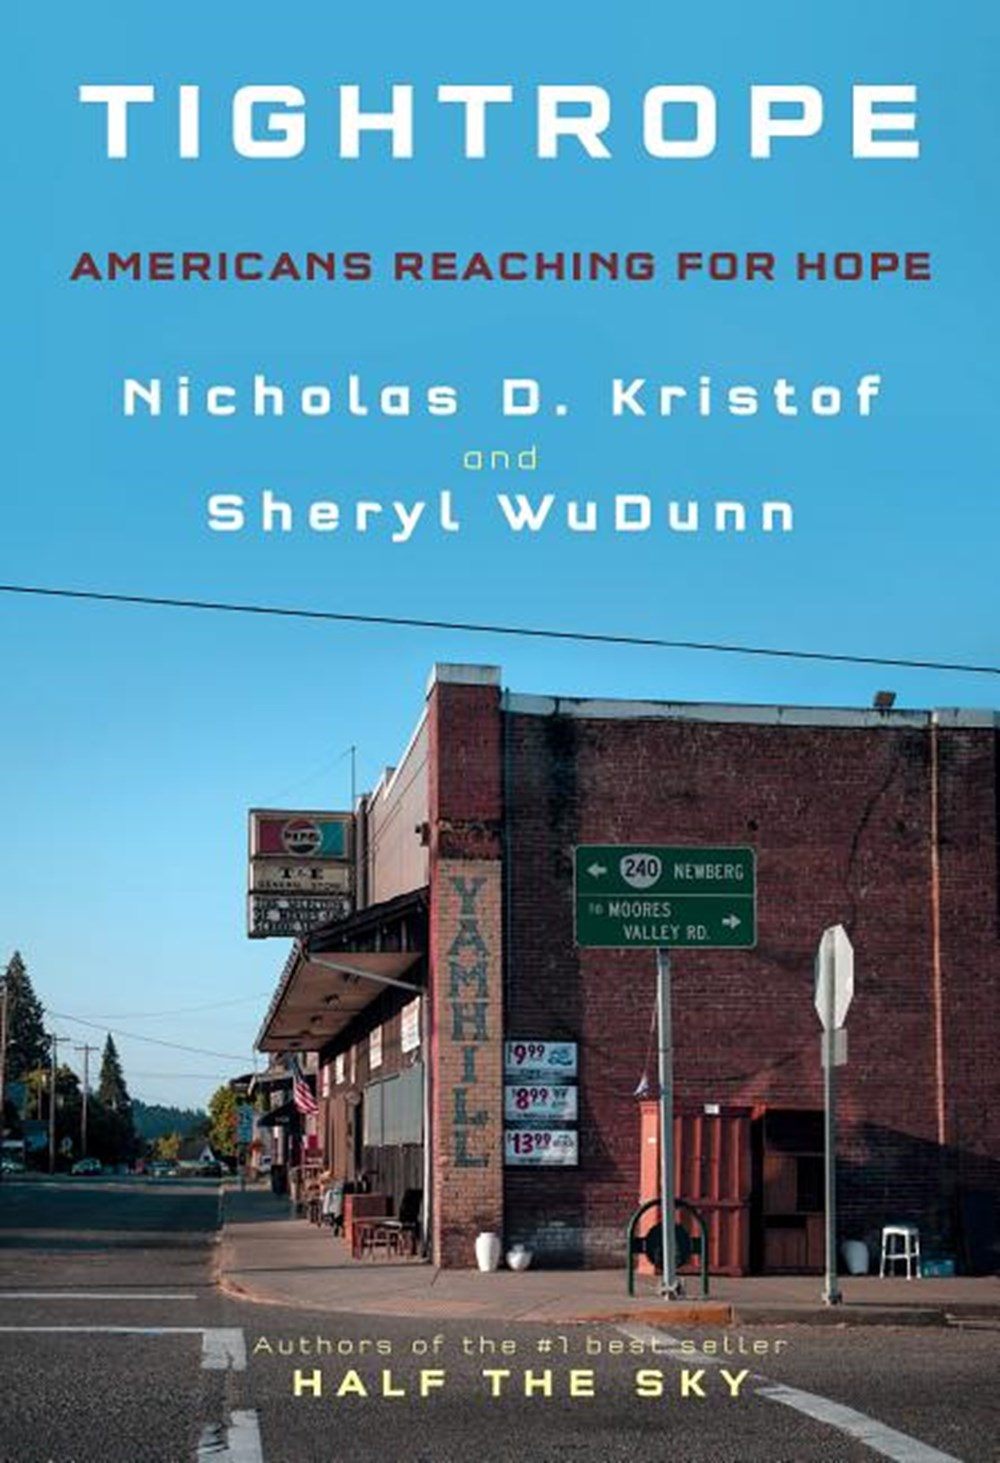 Tightrope Americans Reaching for Hope